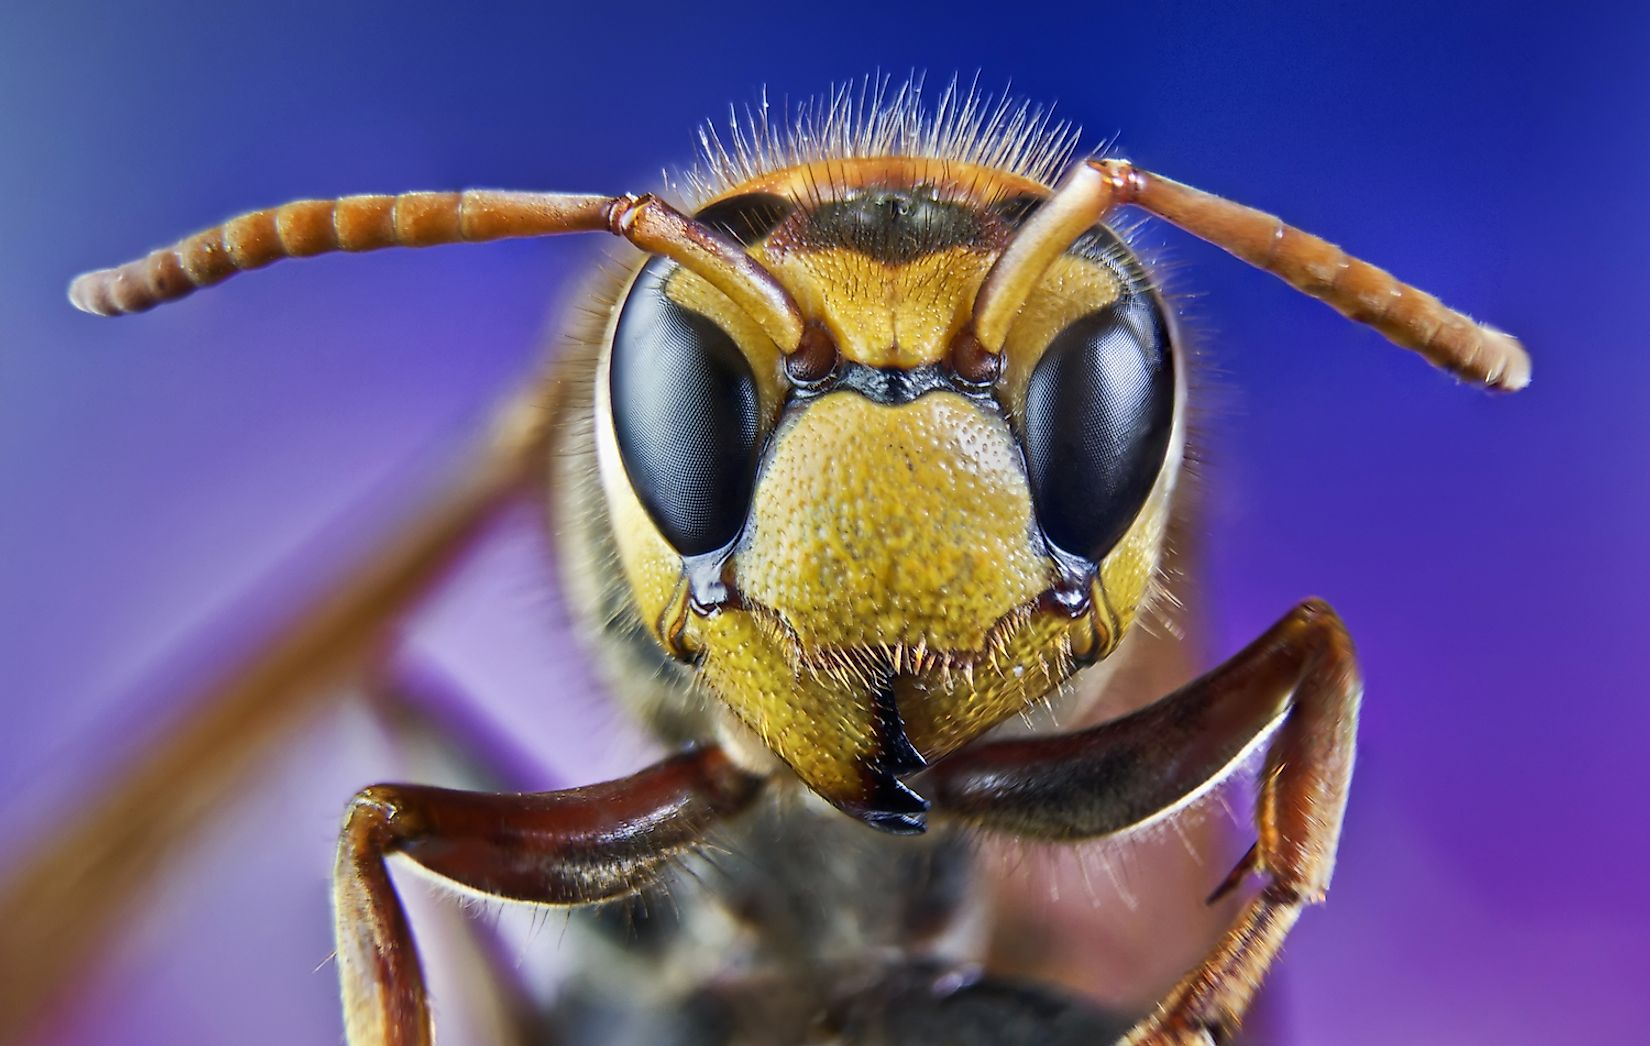 While we would die in the absence of insects, sometimes insects can also kill us. Image credit: MURGVI/Shutterstock.com